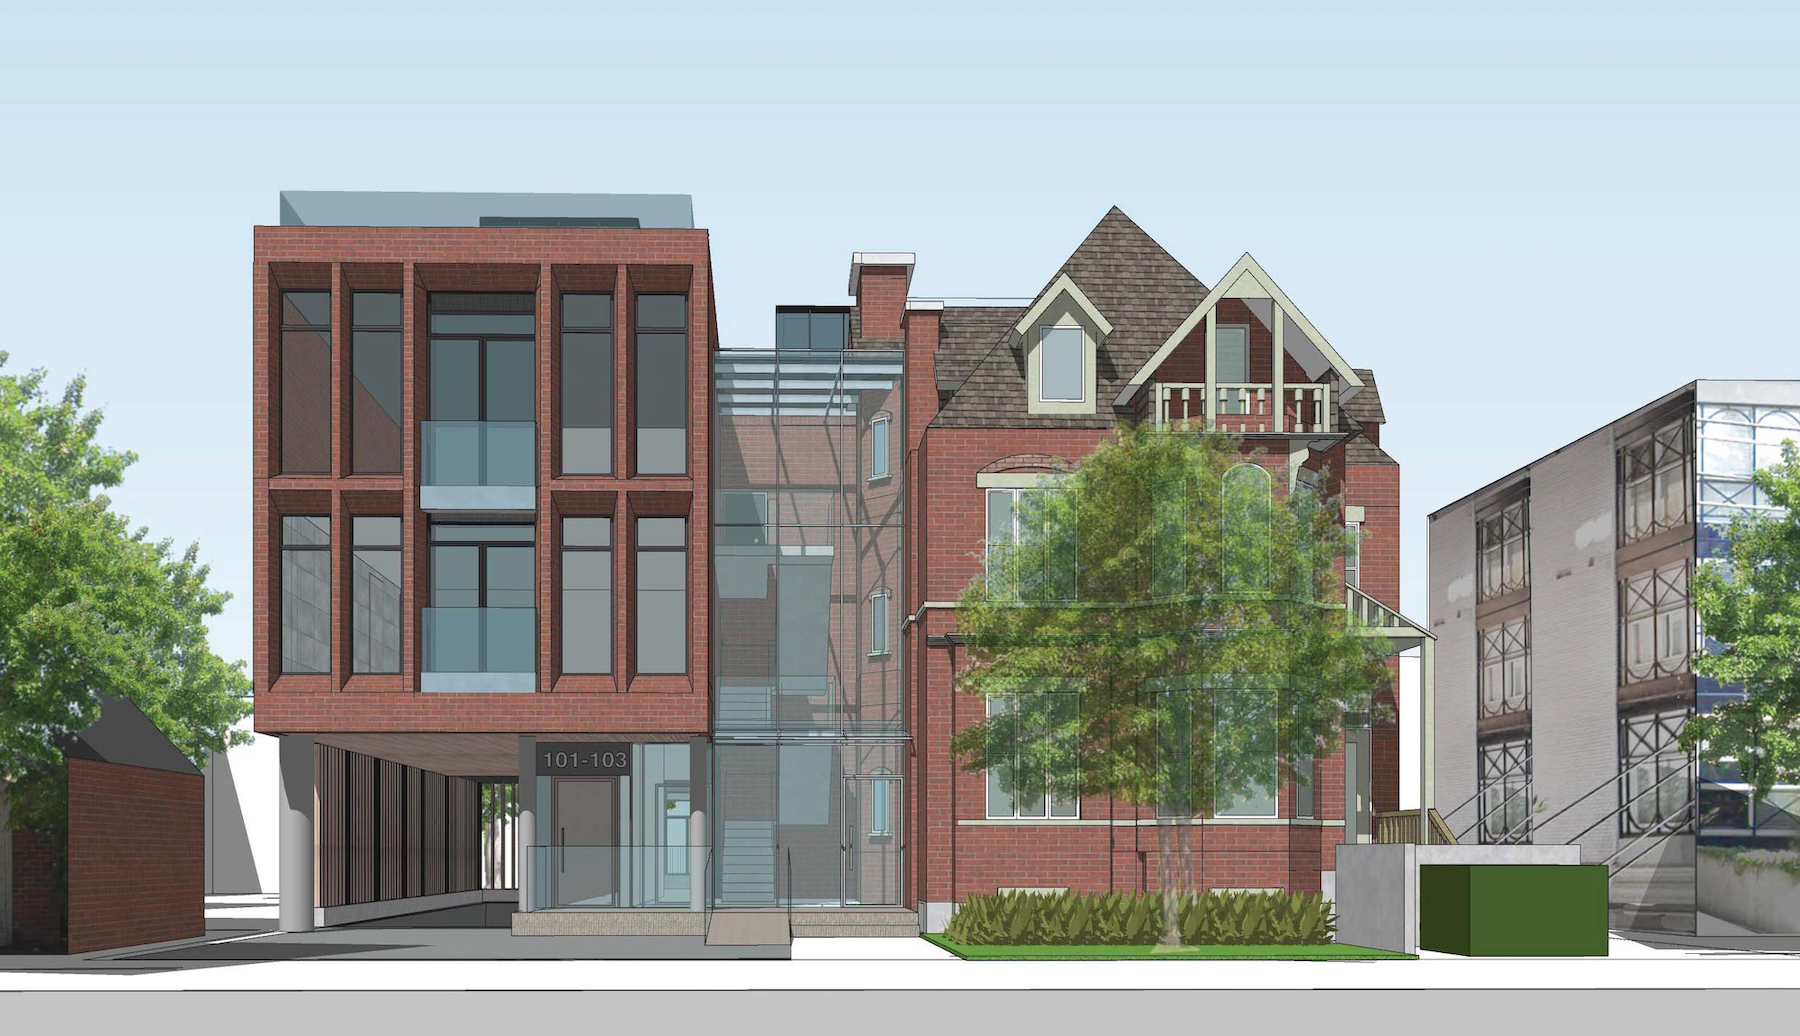 Rendering of 101 Heath Street Condos front-facing full building exterior.